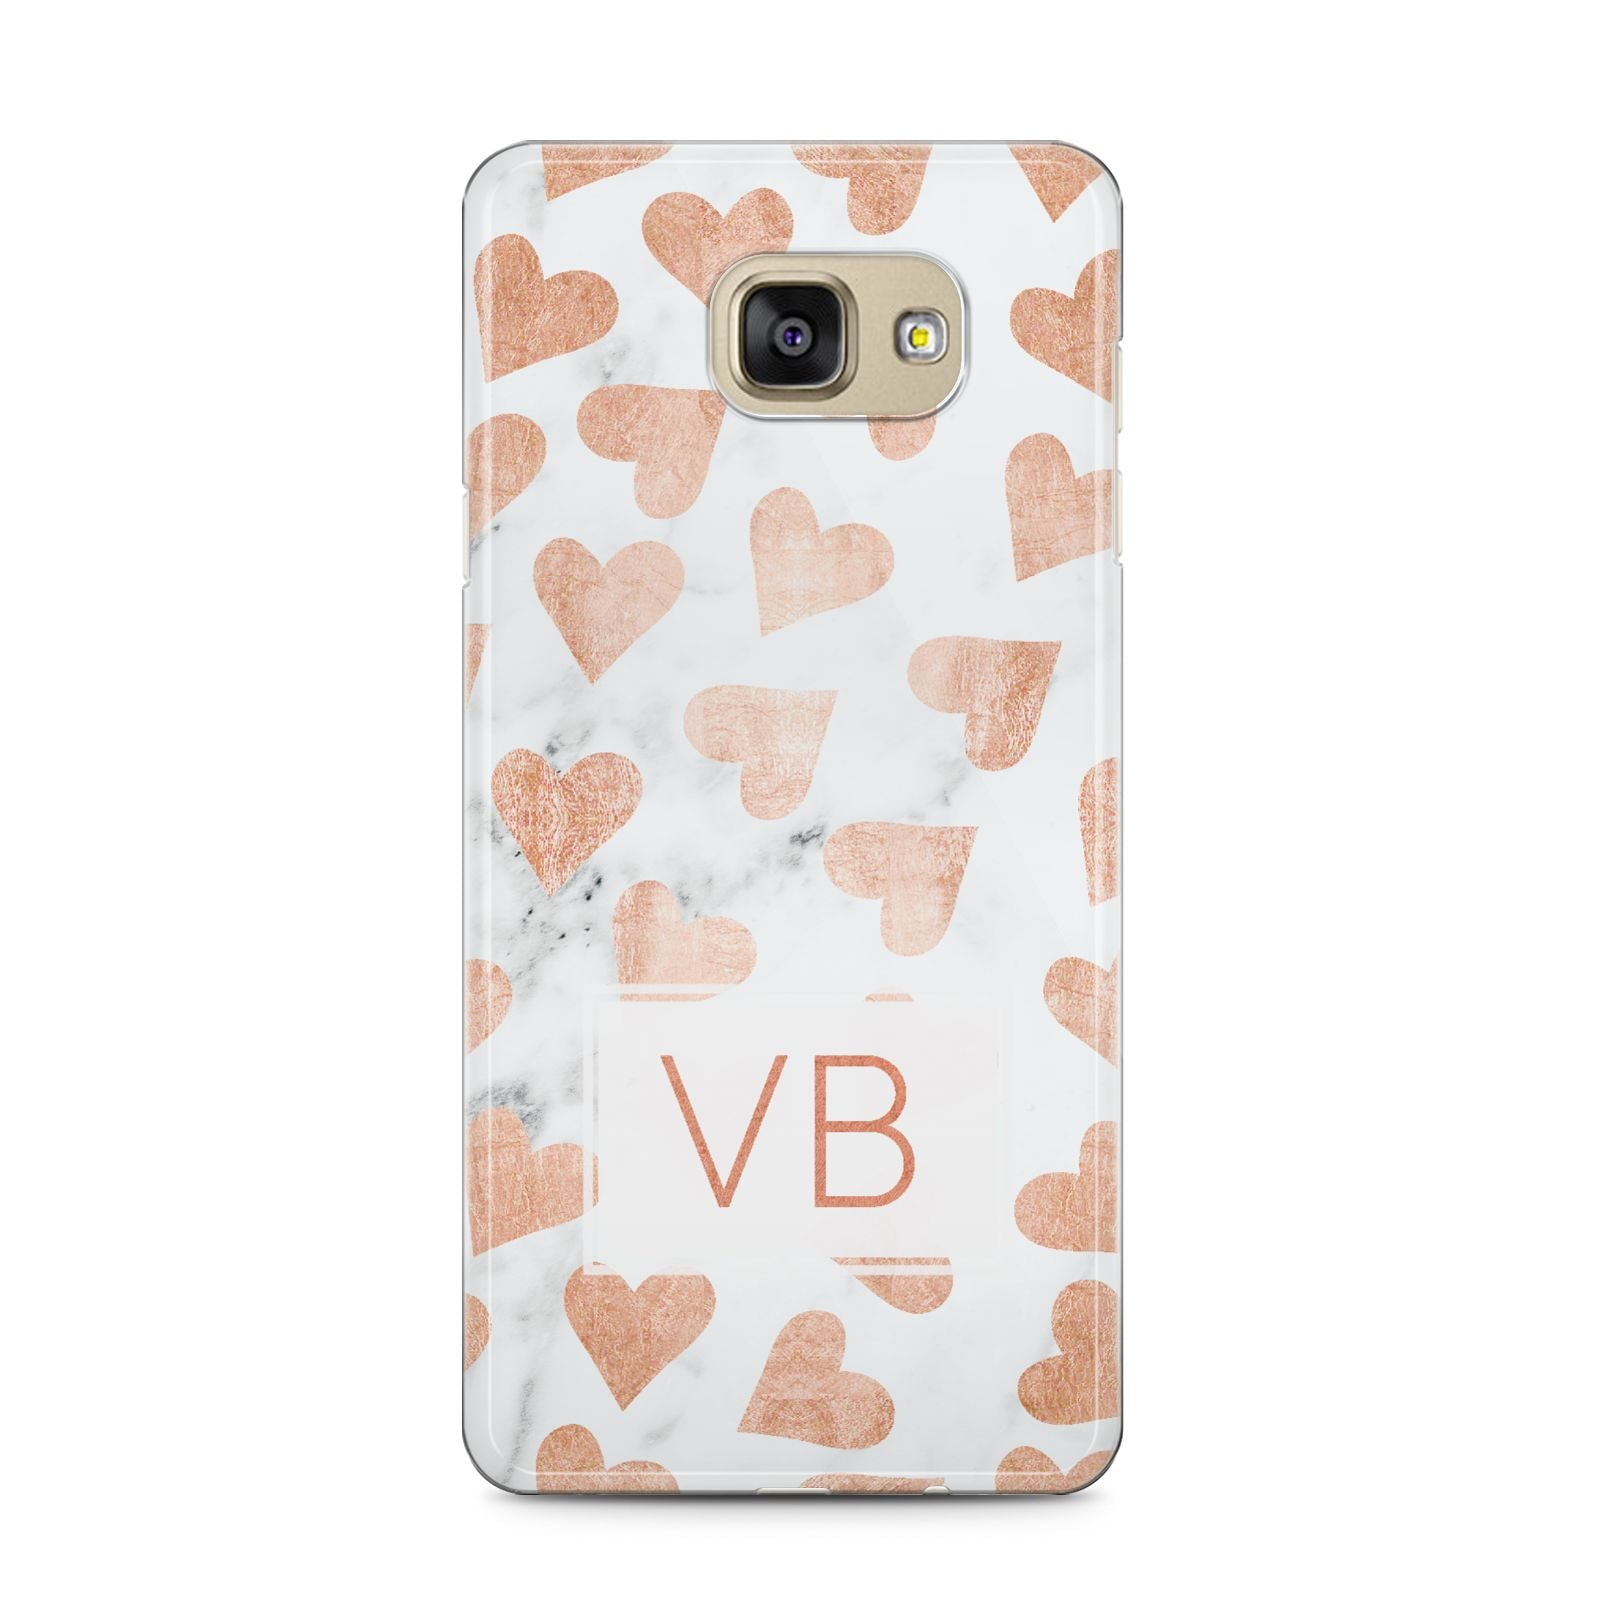 Personalised Heart Initialled Marble Samsung Galaxy A5 2016 Case on gold phone